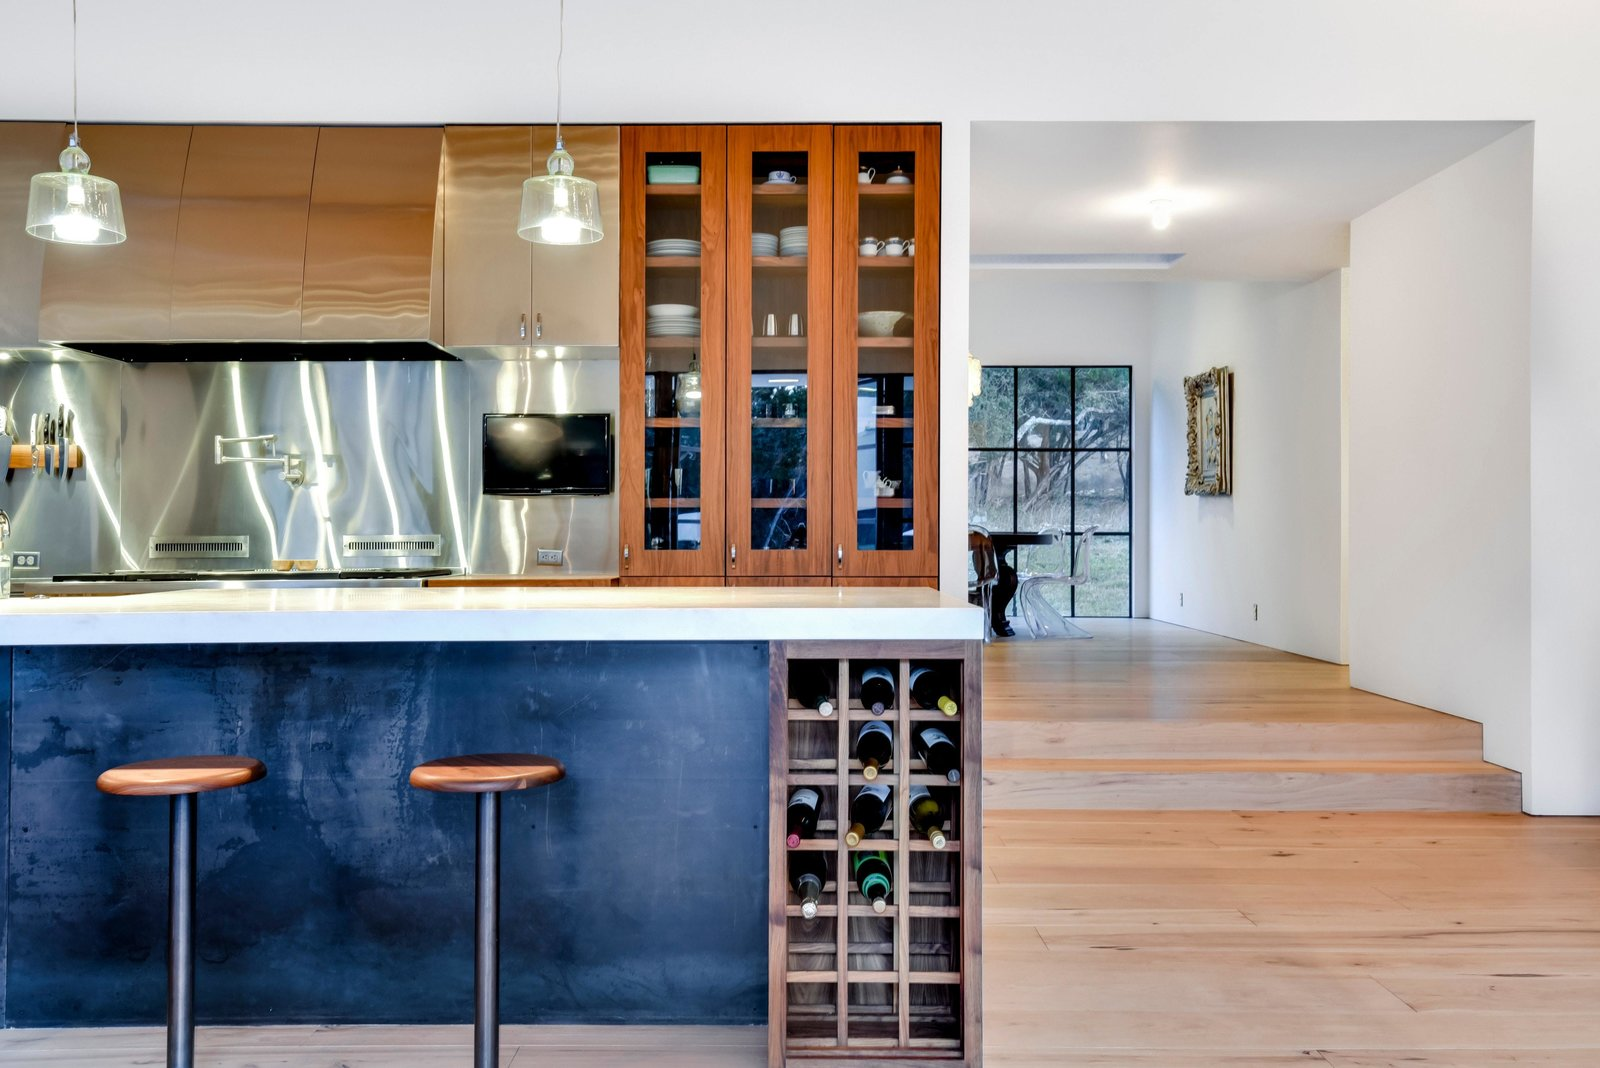 Kitchen, Metal, Range Hood, Range, Medium Hardwood, Wood, Pendant, Beverage Center, and Metal A few steps lead to a more formal dining area.  Kitchen Metal Range Hood Beverage Center Photos from Own This Alluring Sculptural Abode in Austin For $3.1M